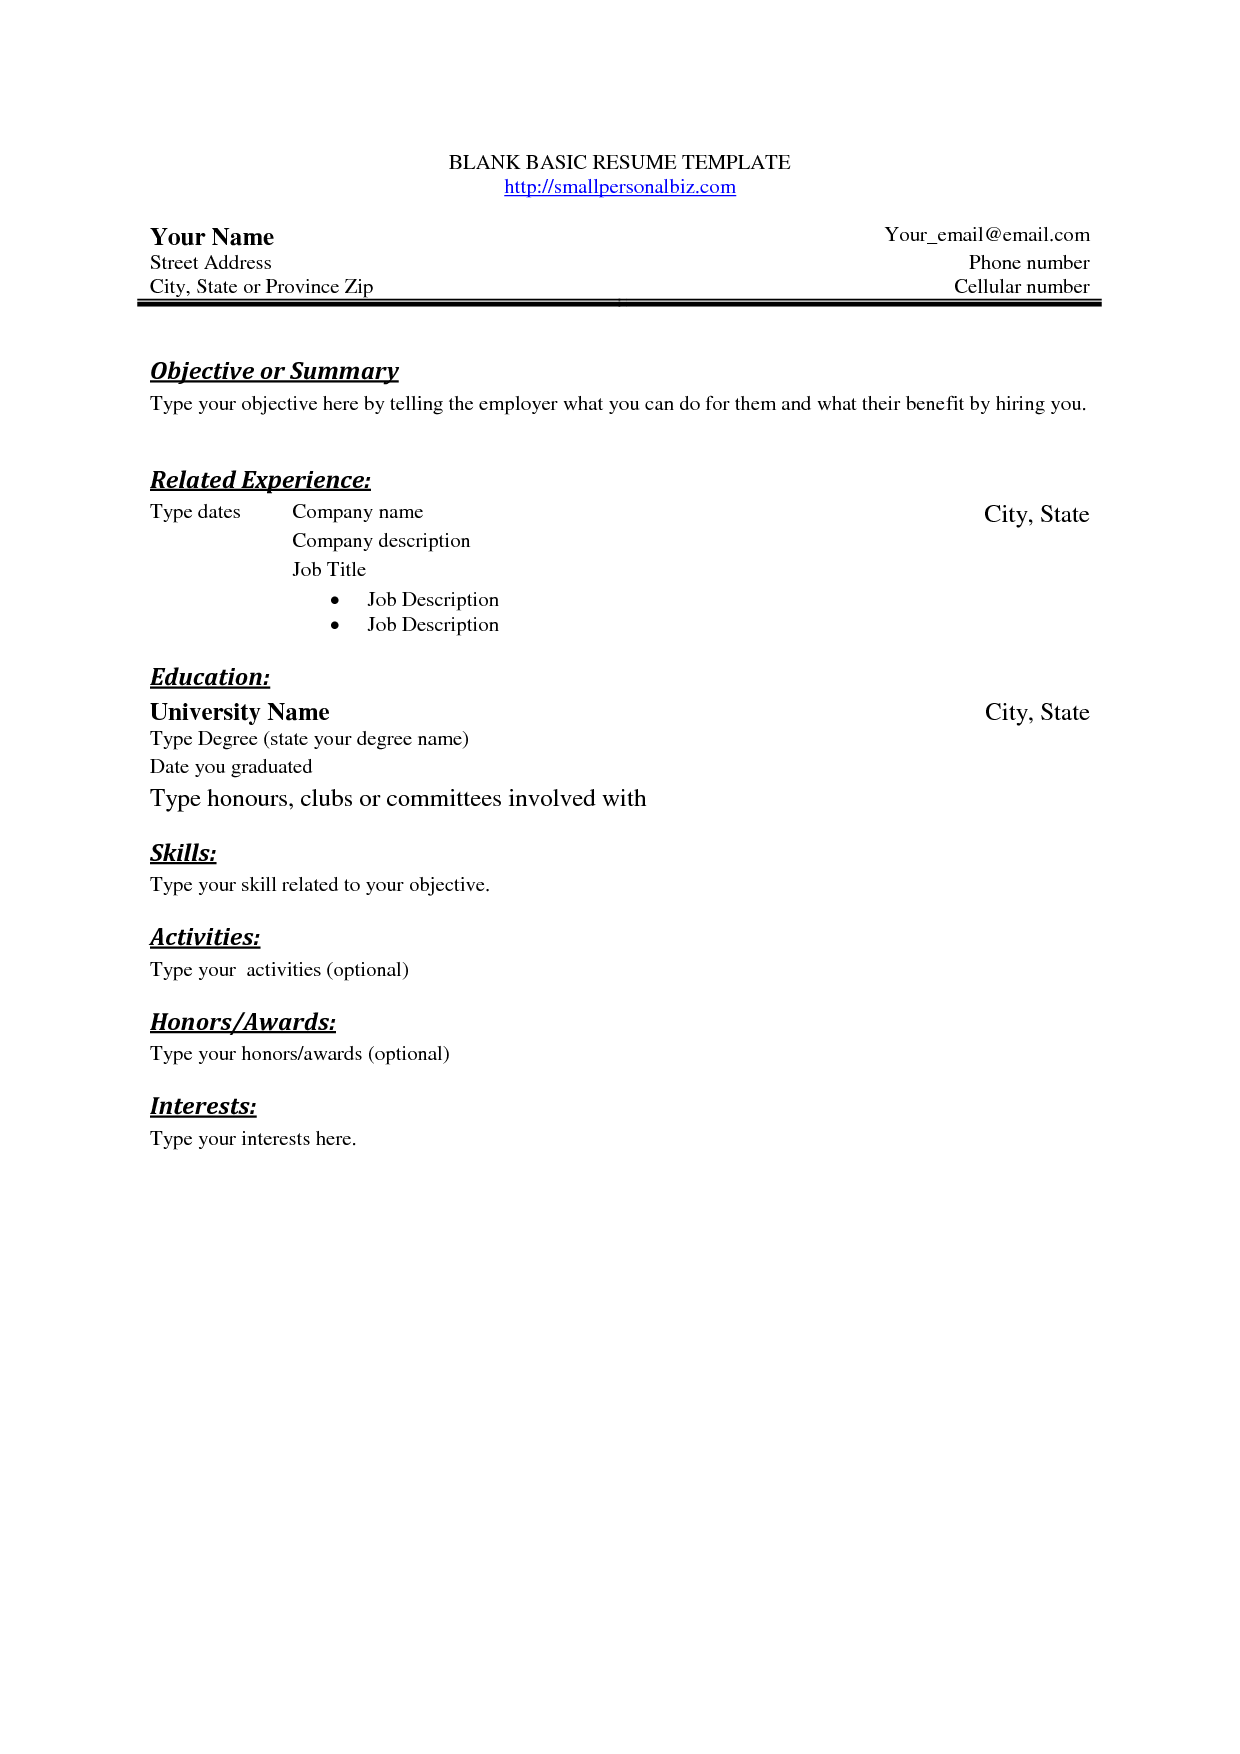 stylist and luxury simple resume layout 10 free basic blank resume template resume example